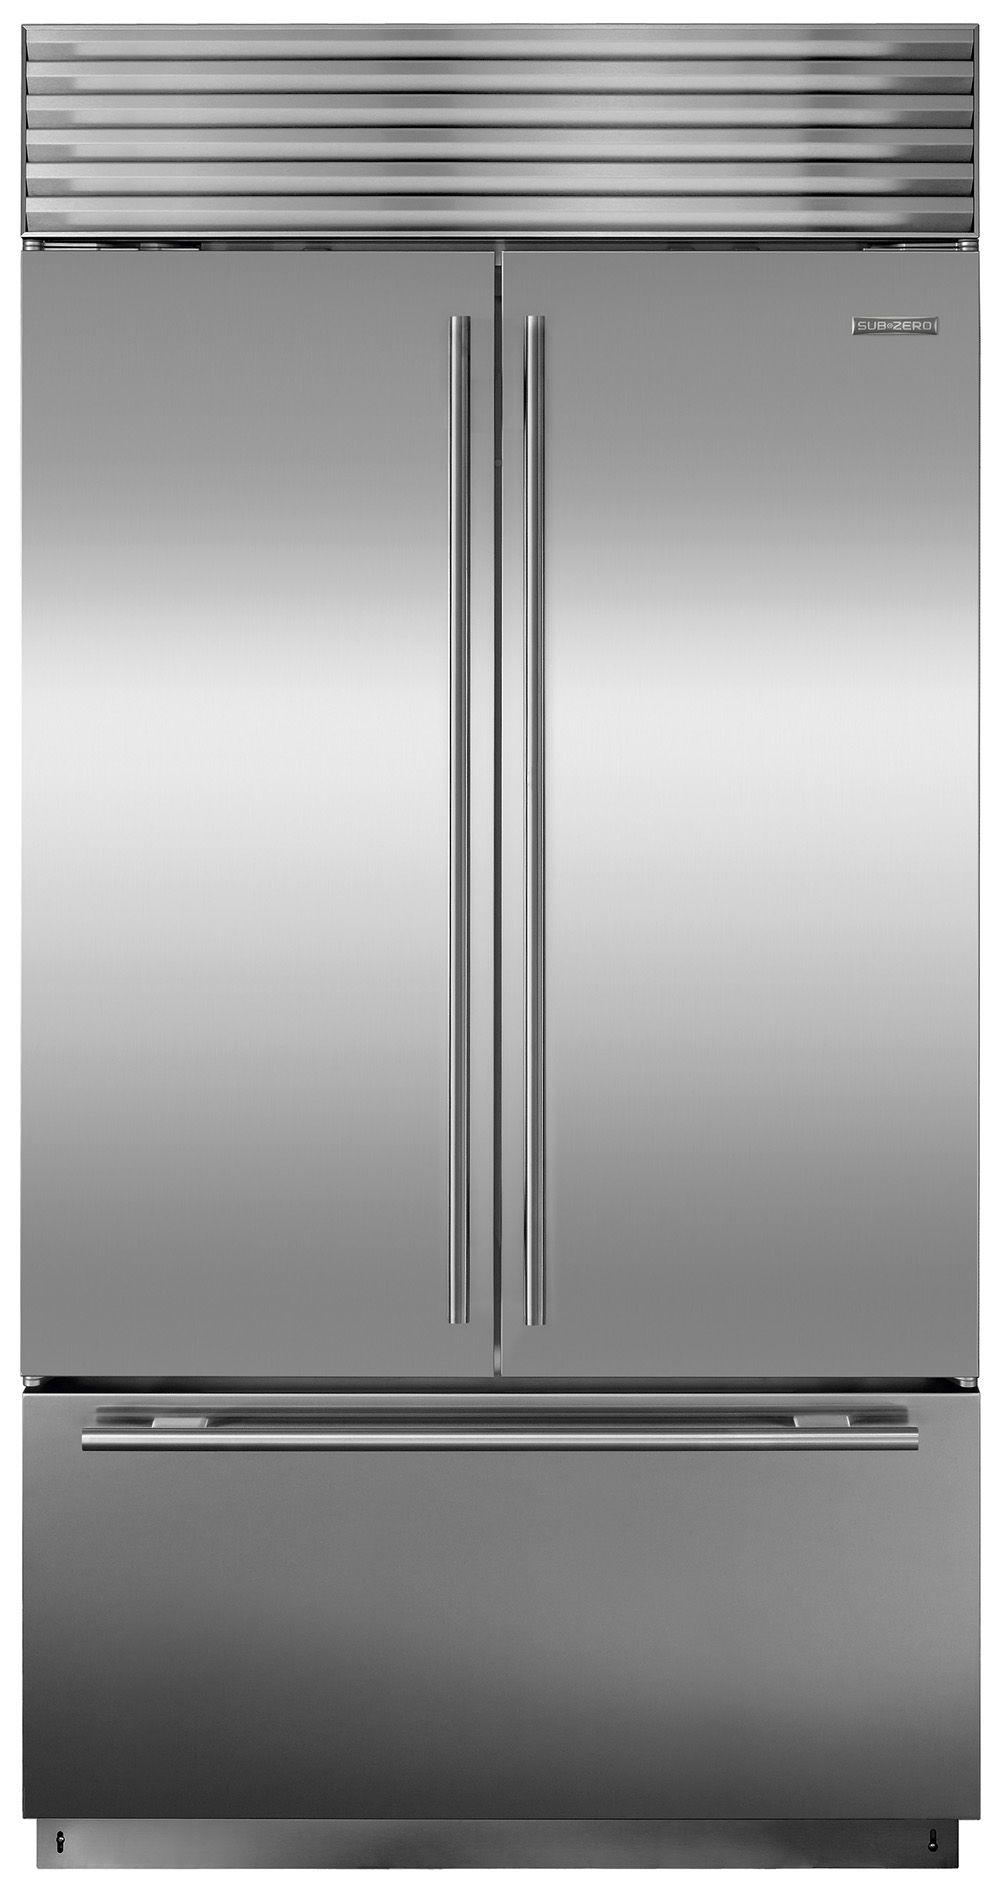 42 Inch Sub Zero Refrigerator Refrigerators Sub Zero Sub Zero Stainless Steel 42 Inch Built In Modern Refrigerators Kitchen Room Kitchen Family Rooms